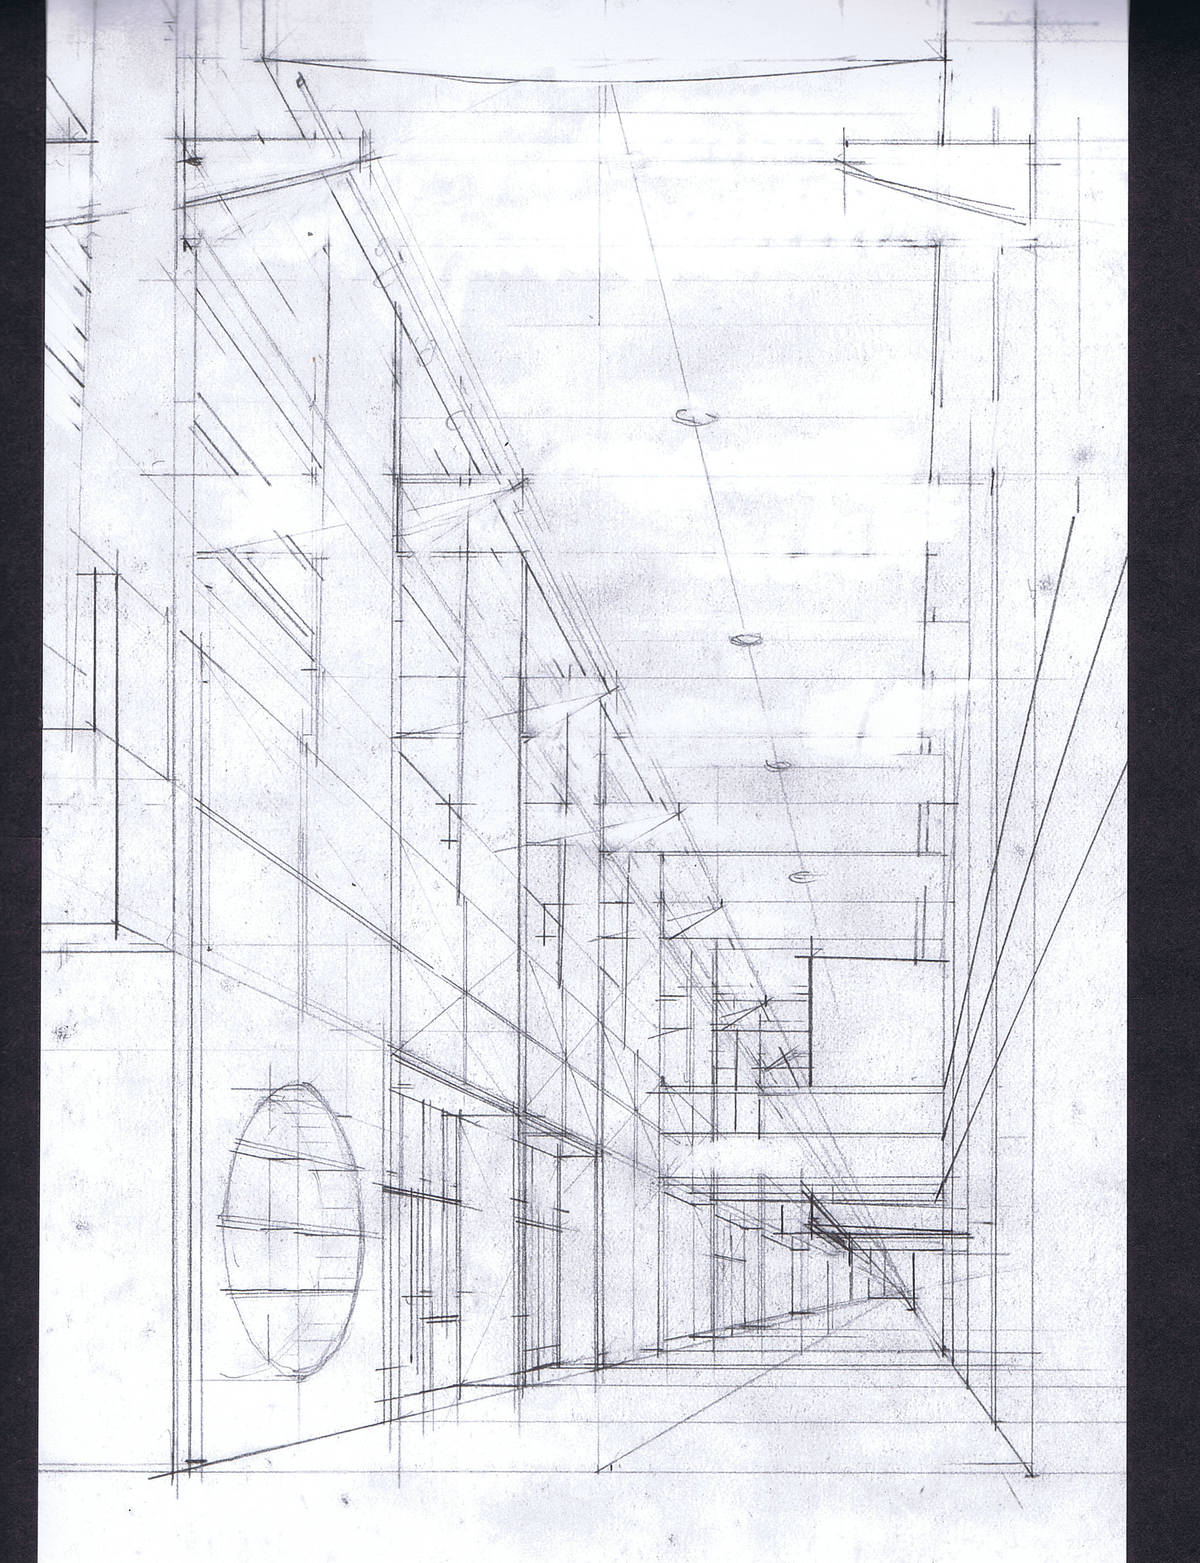 Perspective sketch of an interior main street